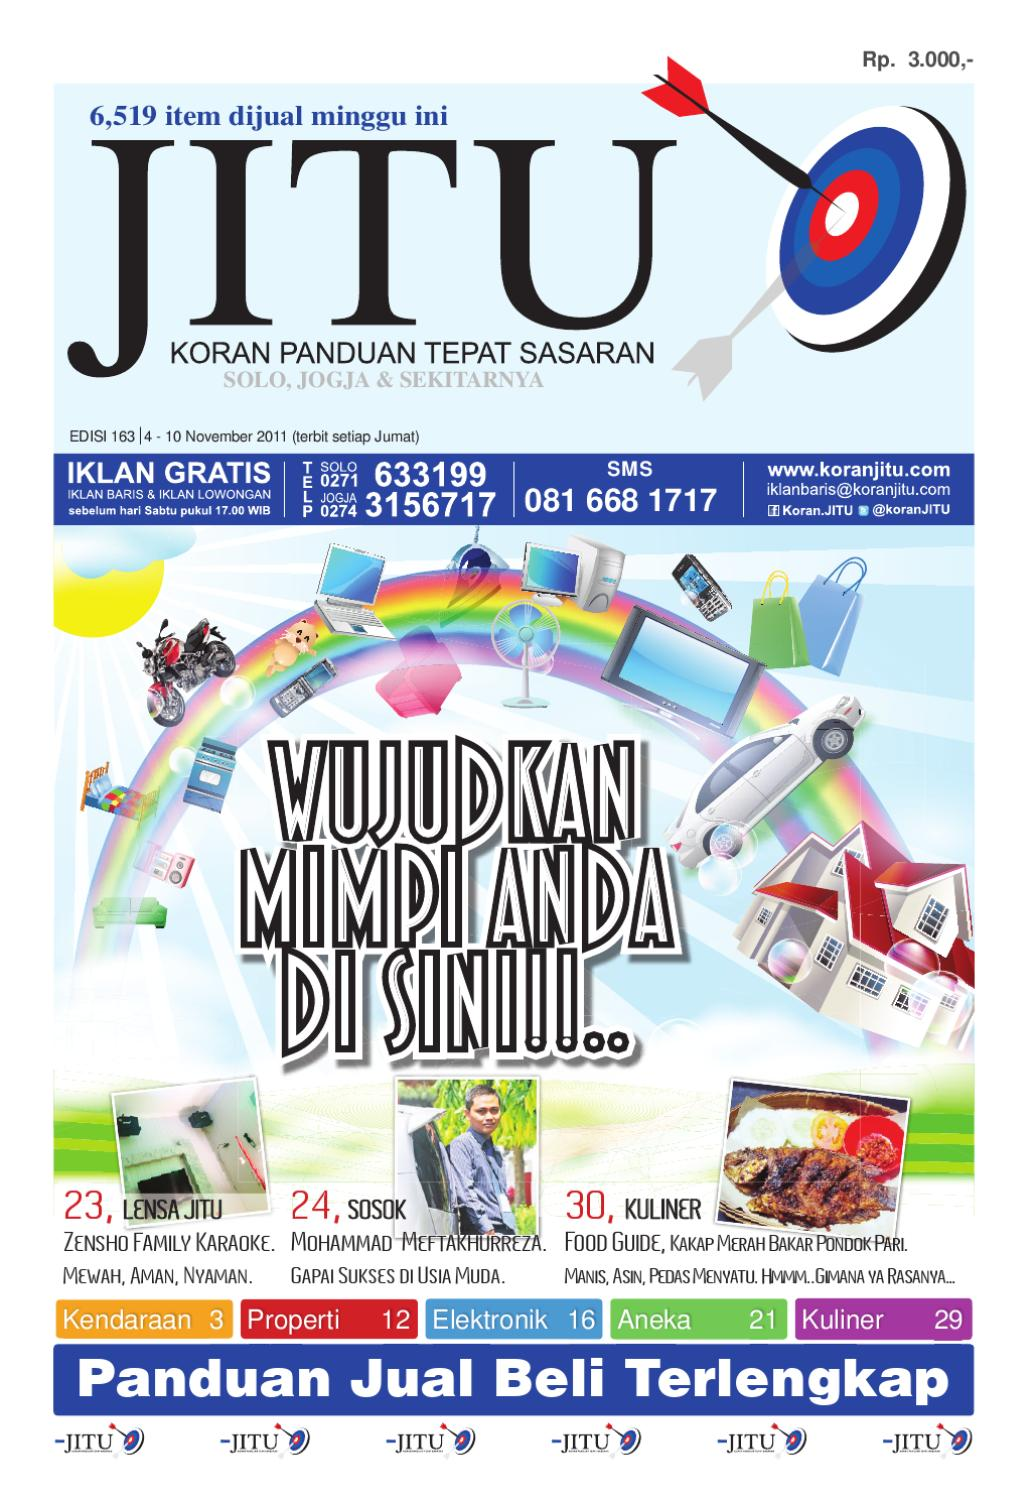 epaper edisi 163 by CV. MITRA MEDIA BANGSA - issuu